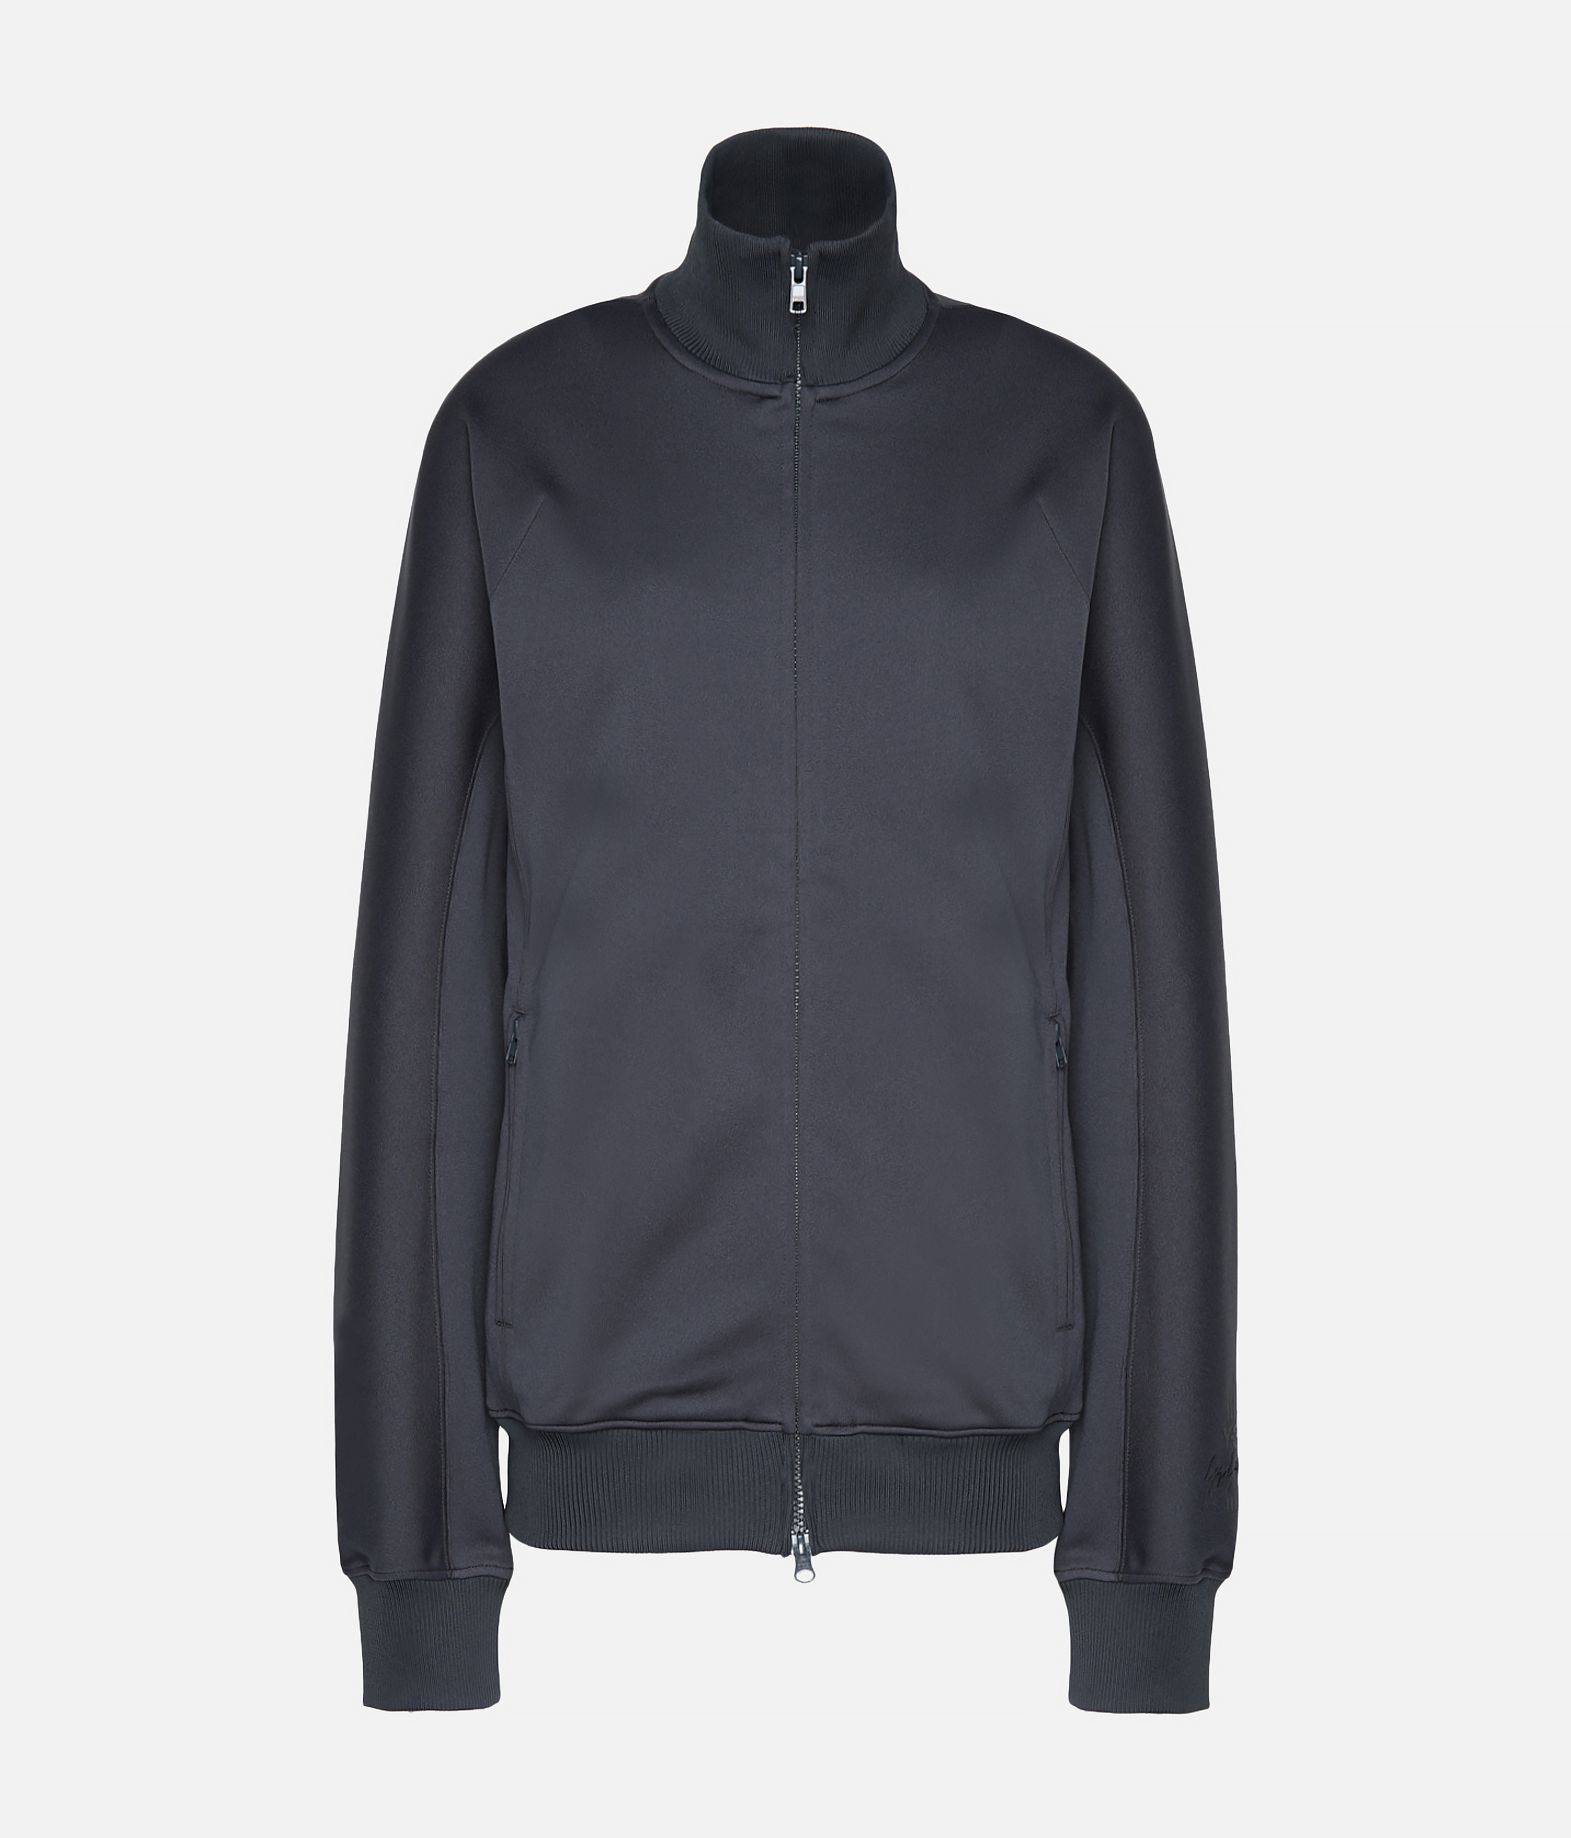 Y-3 Y-3 New Classic Track Jacket Jacket Woman f